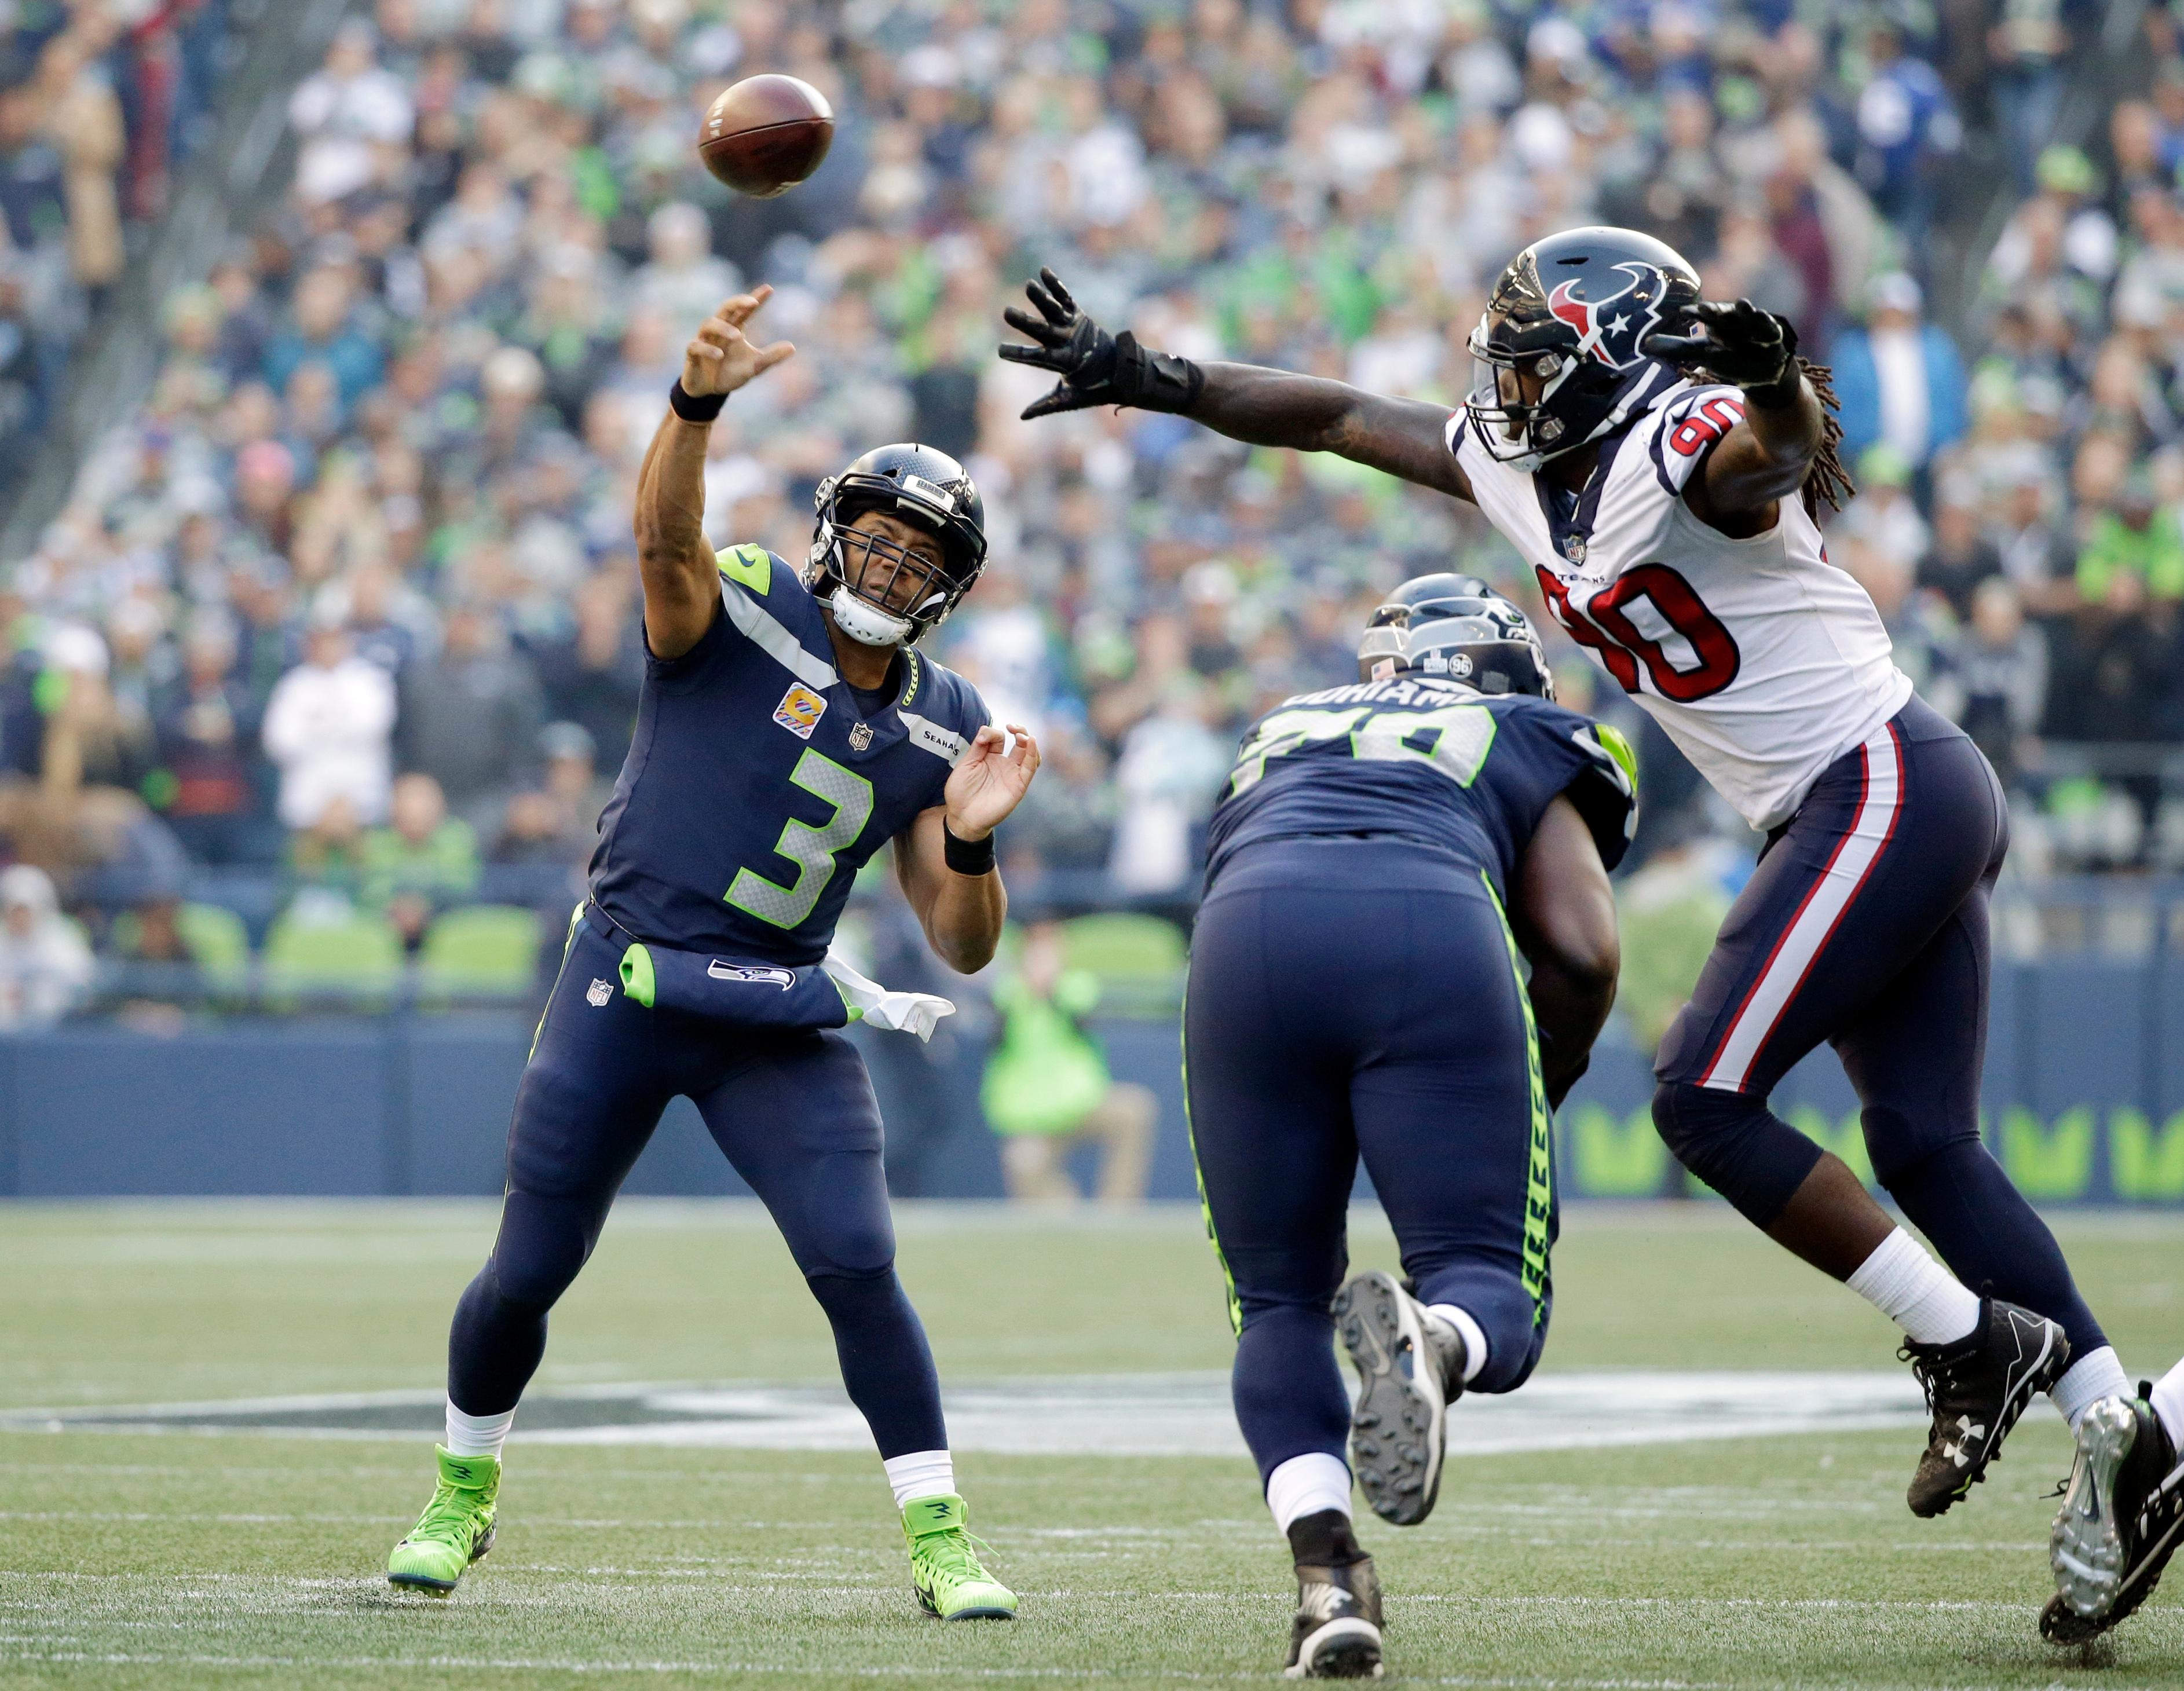 Seattle Seahawks quarterback Russell Wilson (3) passes under pressure from Houston Texans outside linebacker Jadeveon Clowney (90) in the second half of an NFL football game, Sunday, Oct. 29, 2017, in Seattle. (AP Photo/Elaine Thompson)